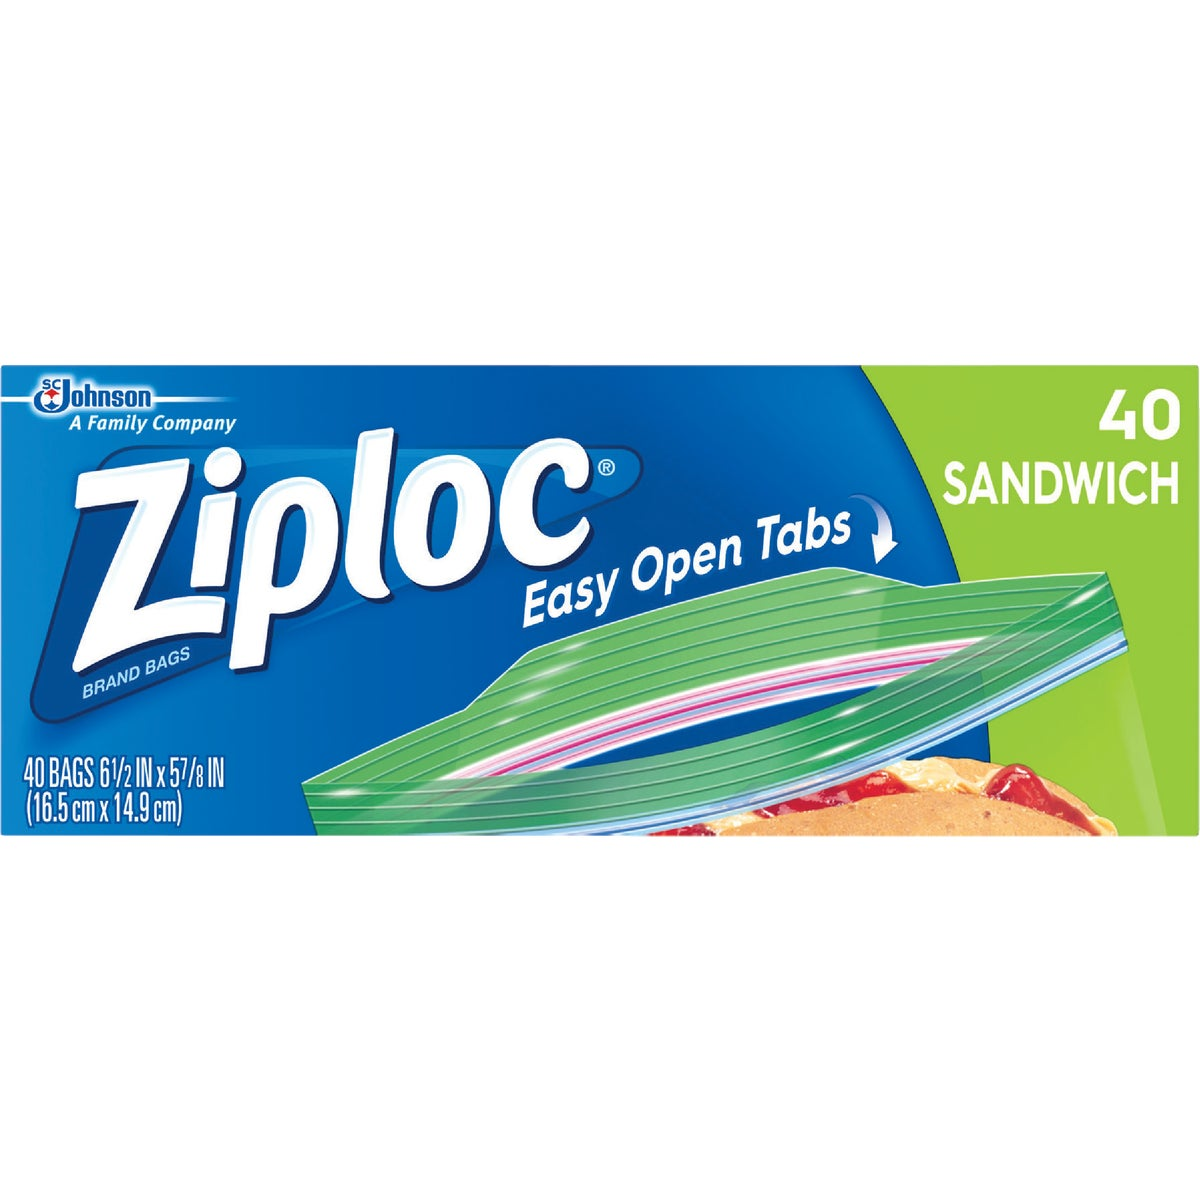 ZIPLOC SANDWICH BAG - 00390 by Sc Johnson